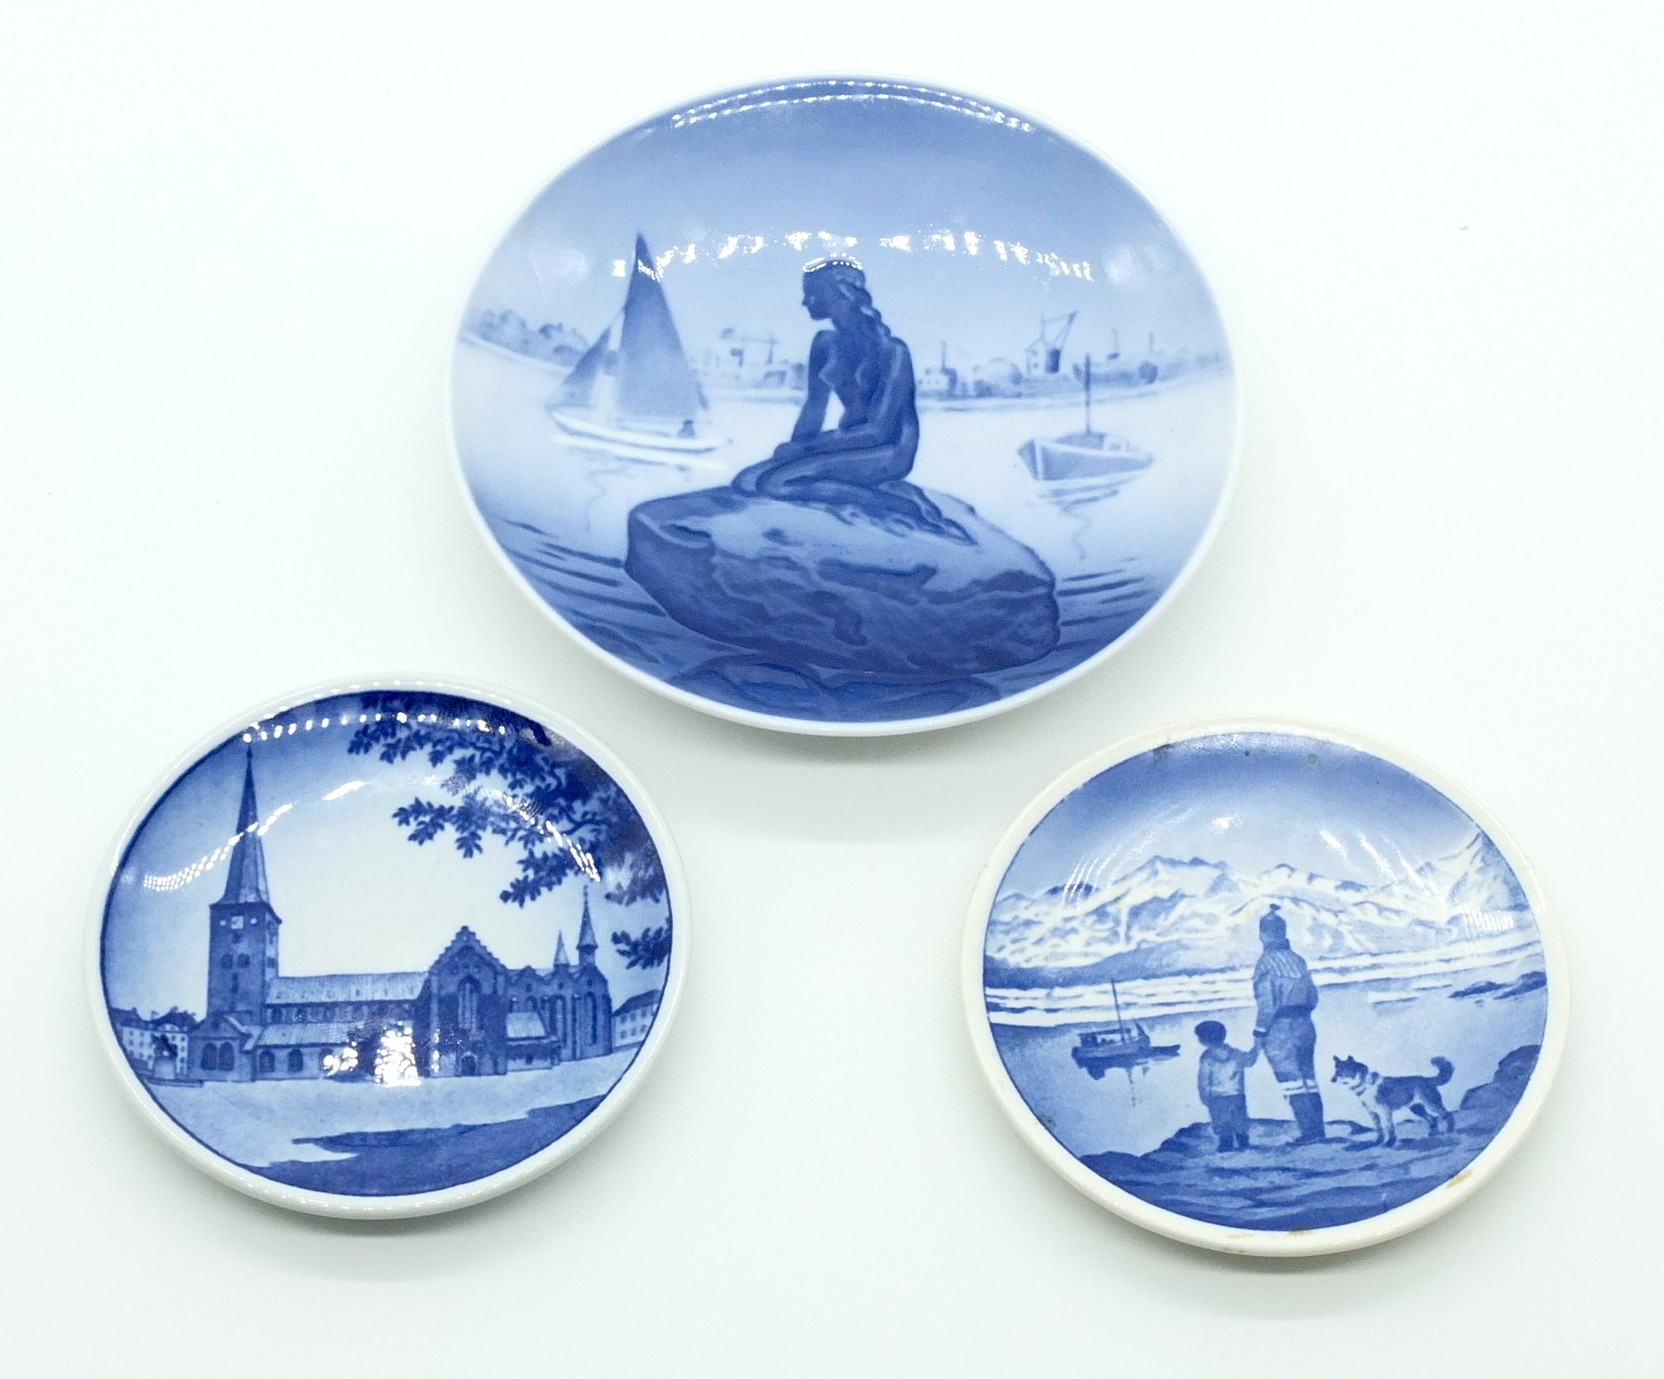 'Royal Copenhagen Langelinie and Arhus Domkirke Dishes and a Alumina Copenhagen Dish'